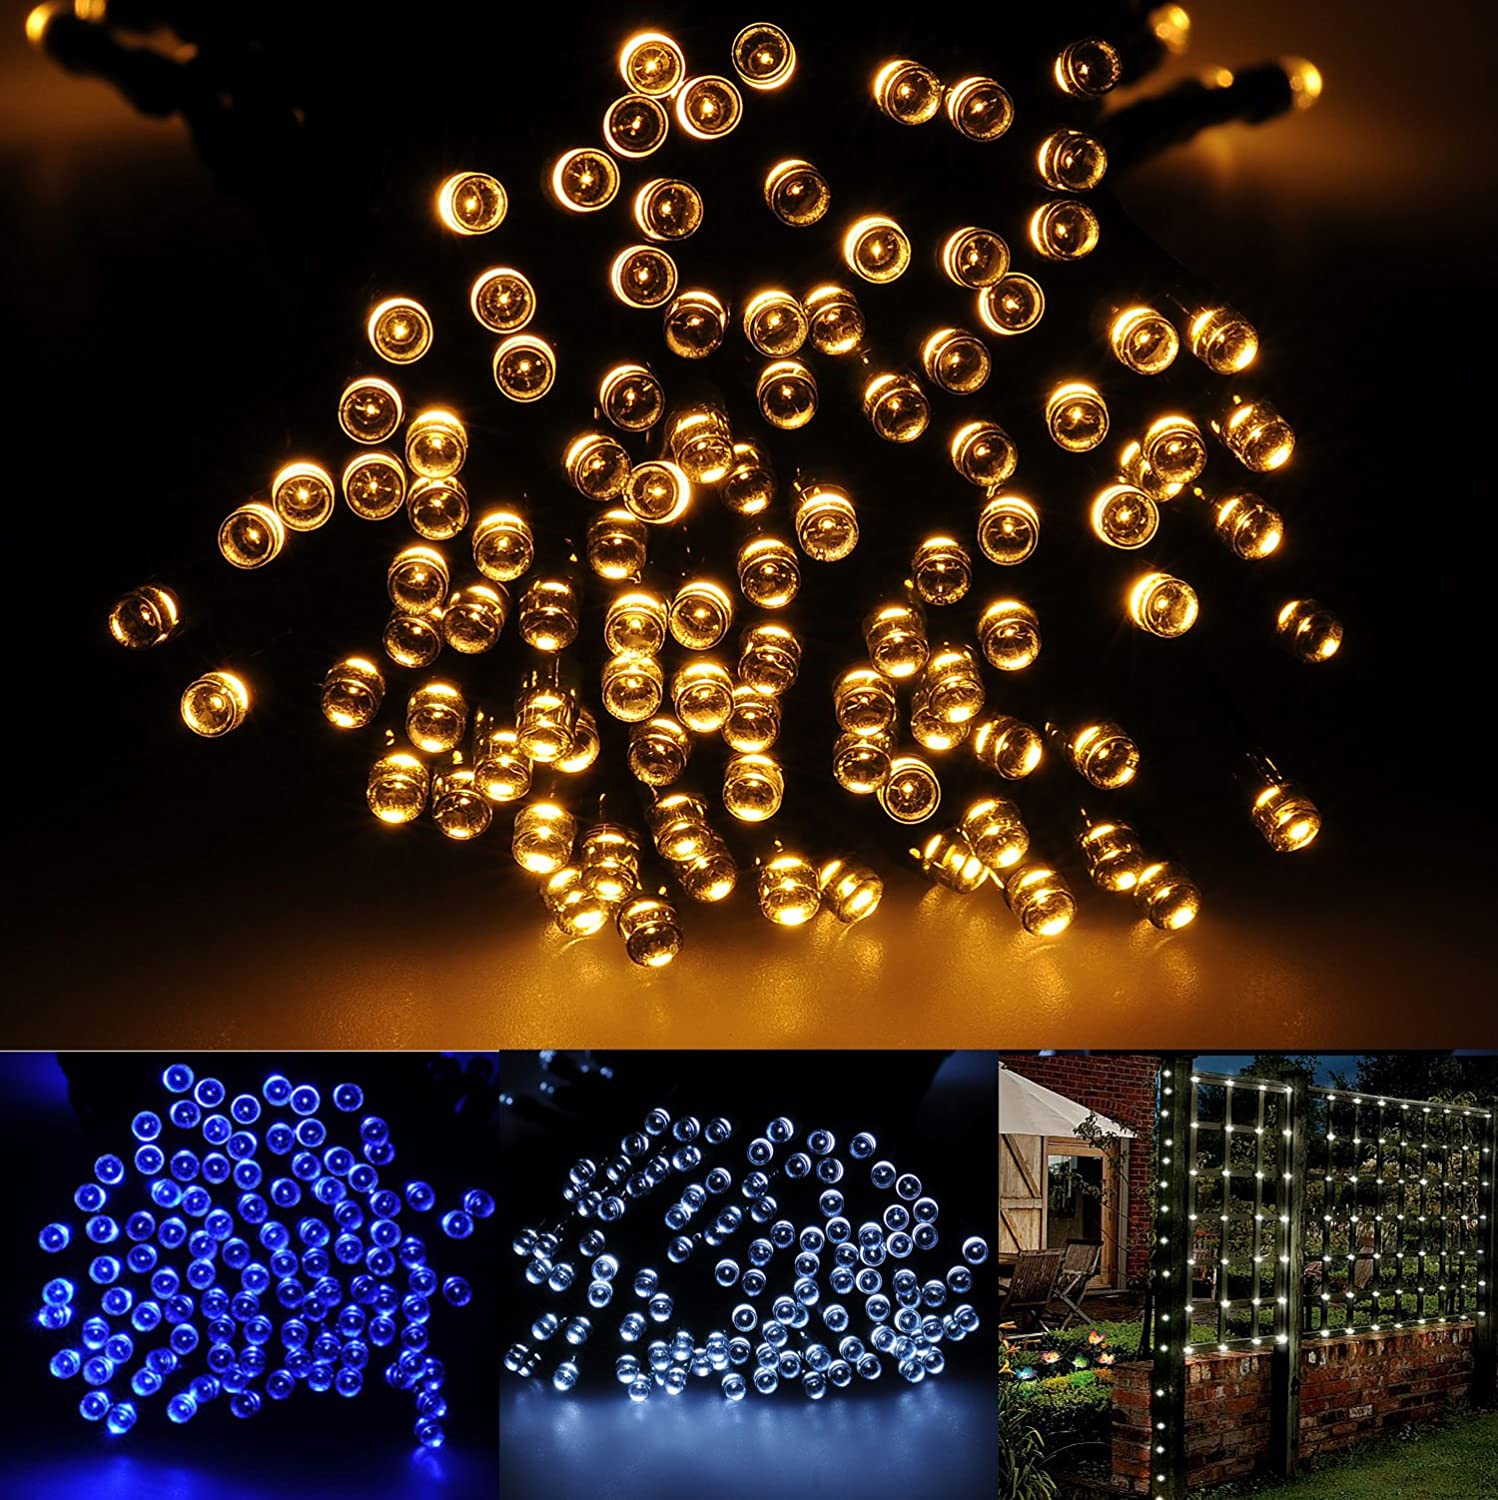 Brightown 72ft/22m 200 LED Solar Fairy String Lights for Outdoor, Gardens, Patio, Lawn, Porch, Gate, Yard, Trees, Homes, Christmas Party, Color Warm White, Guarantee for Three Month Replacement динамик широкополосный beyma 12ga50 1 шт